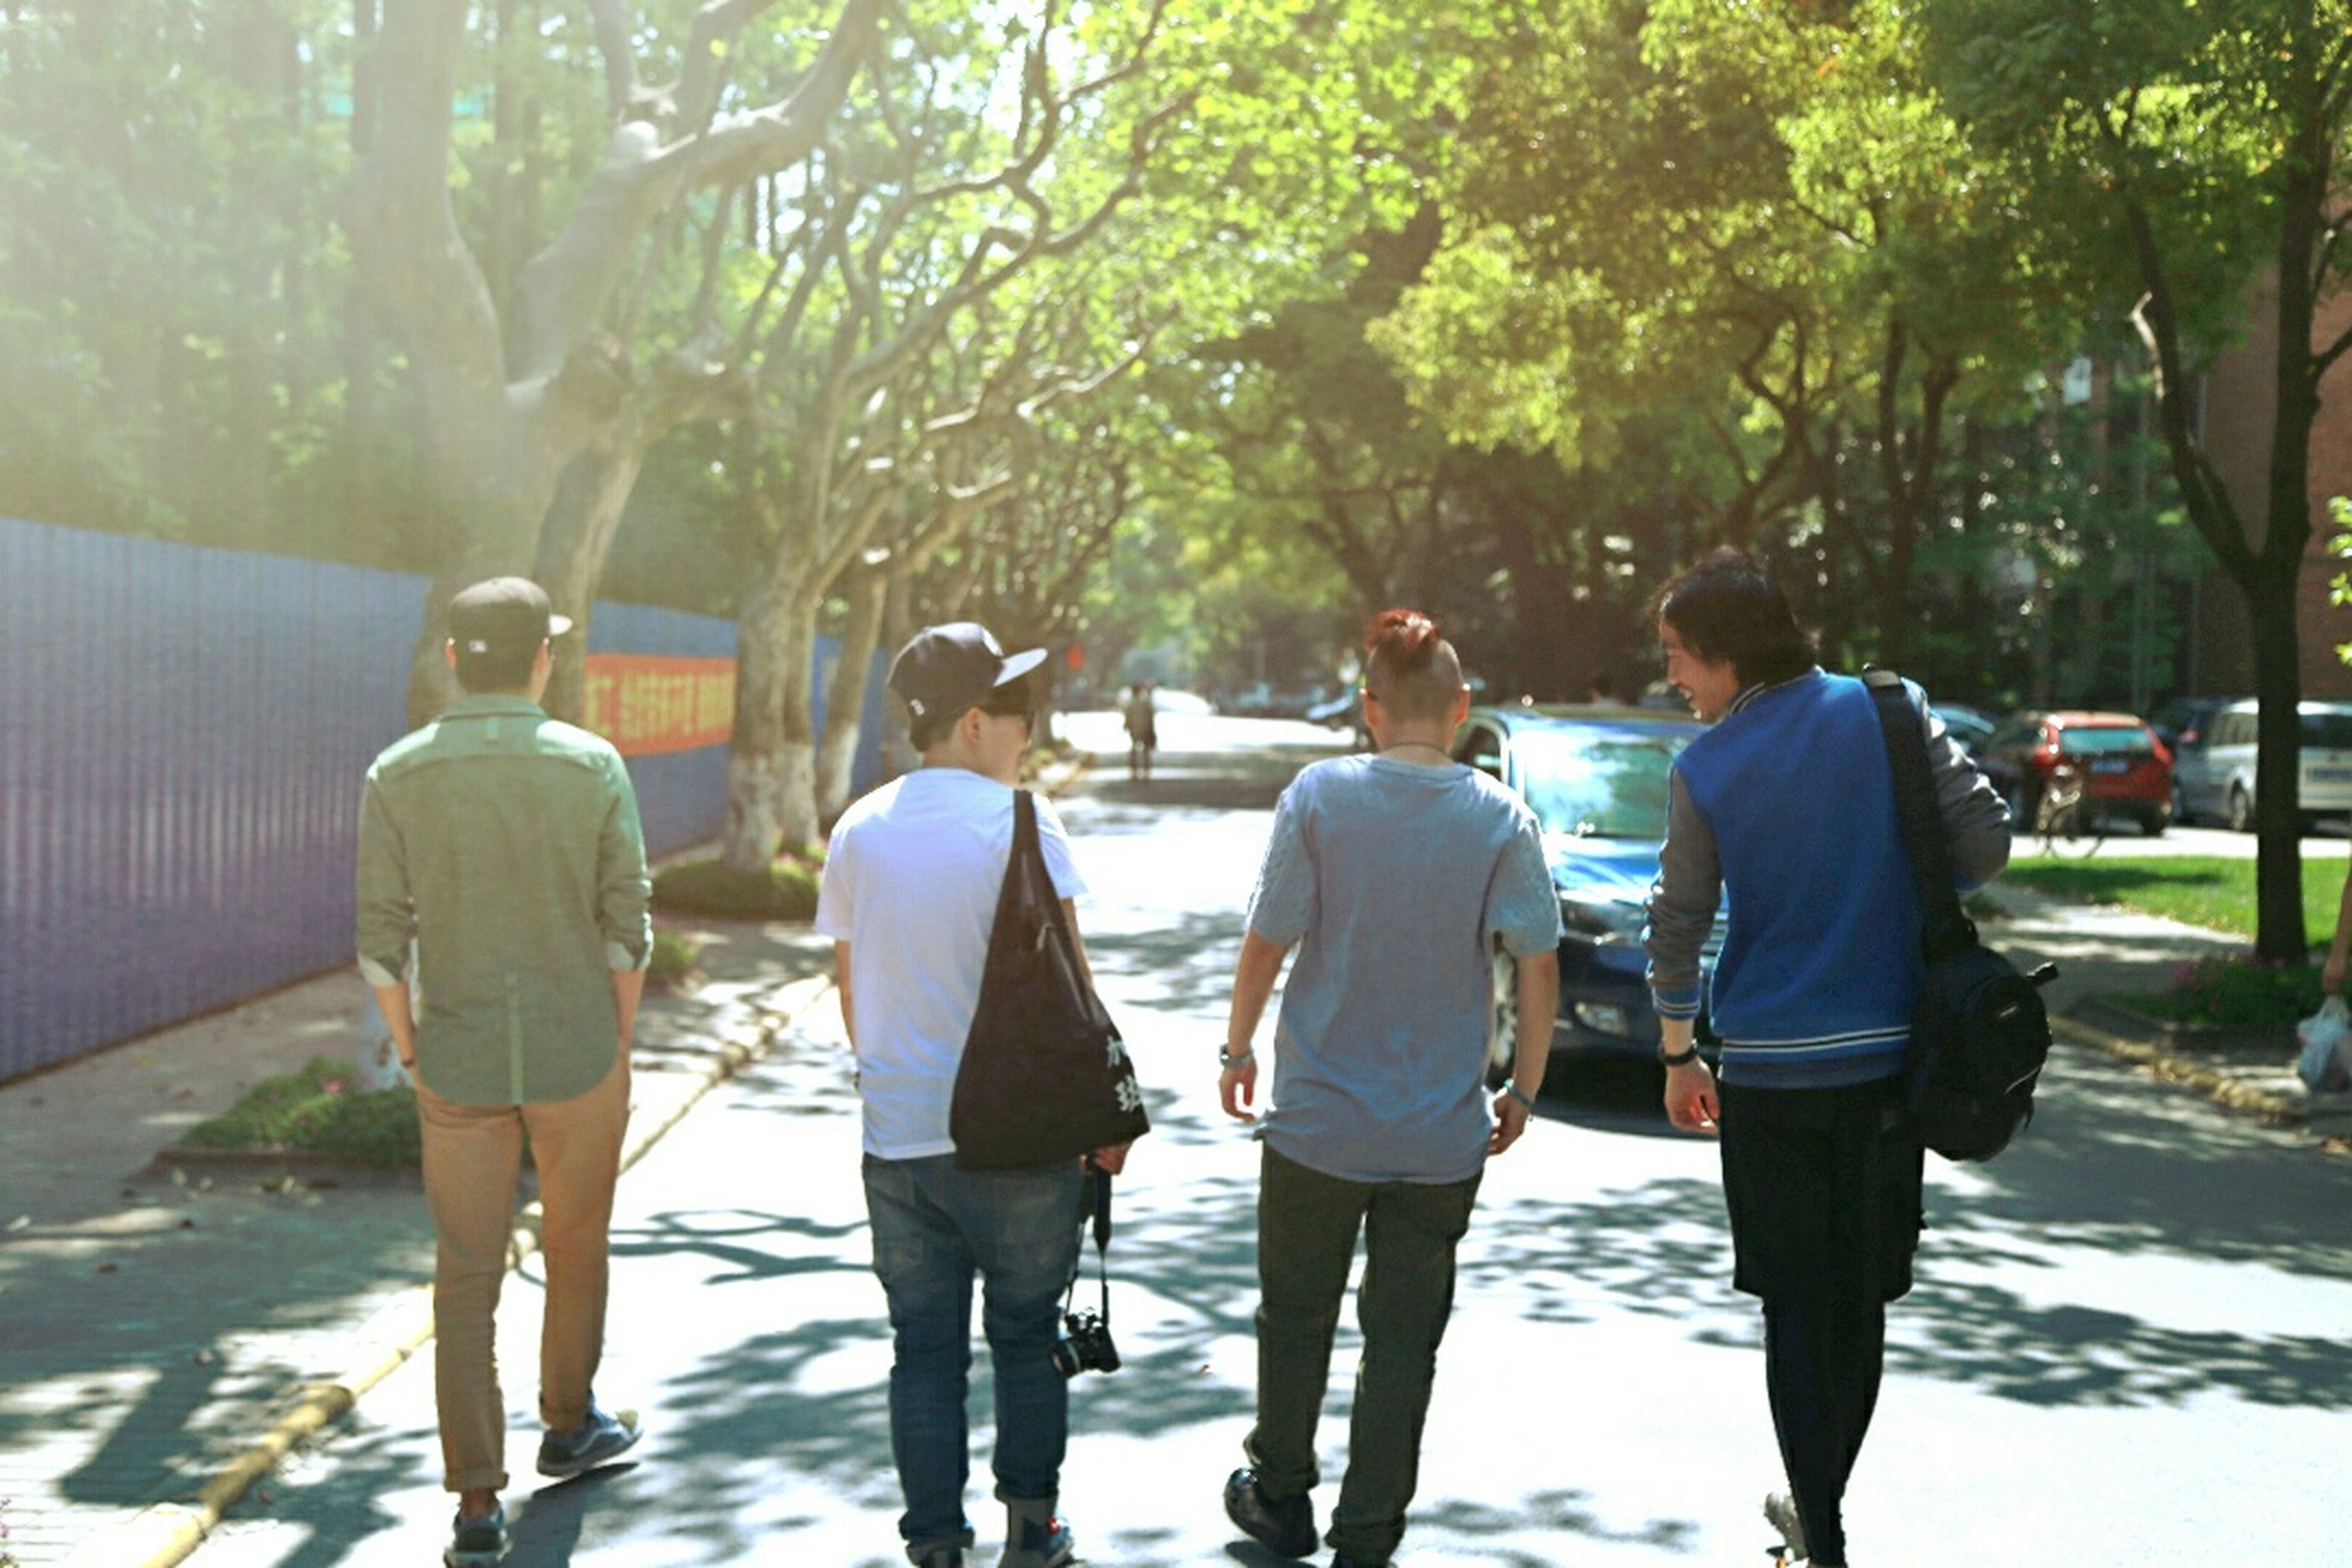 tree, lifestyles, men, rear view, leisure activity, walking, togetherness, person, full length, casual clothing, bonding, standing, friendship, medium group of people, street, day, water